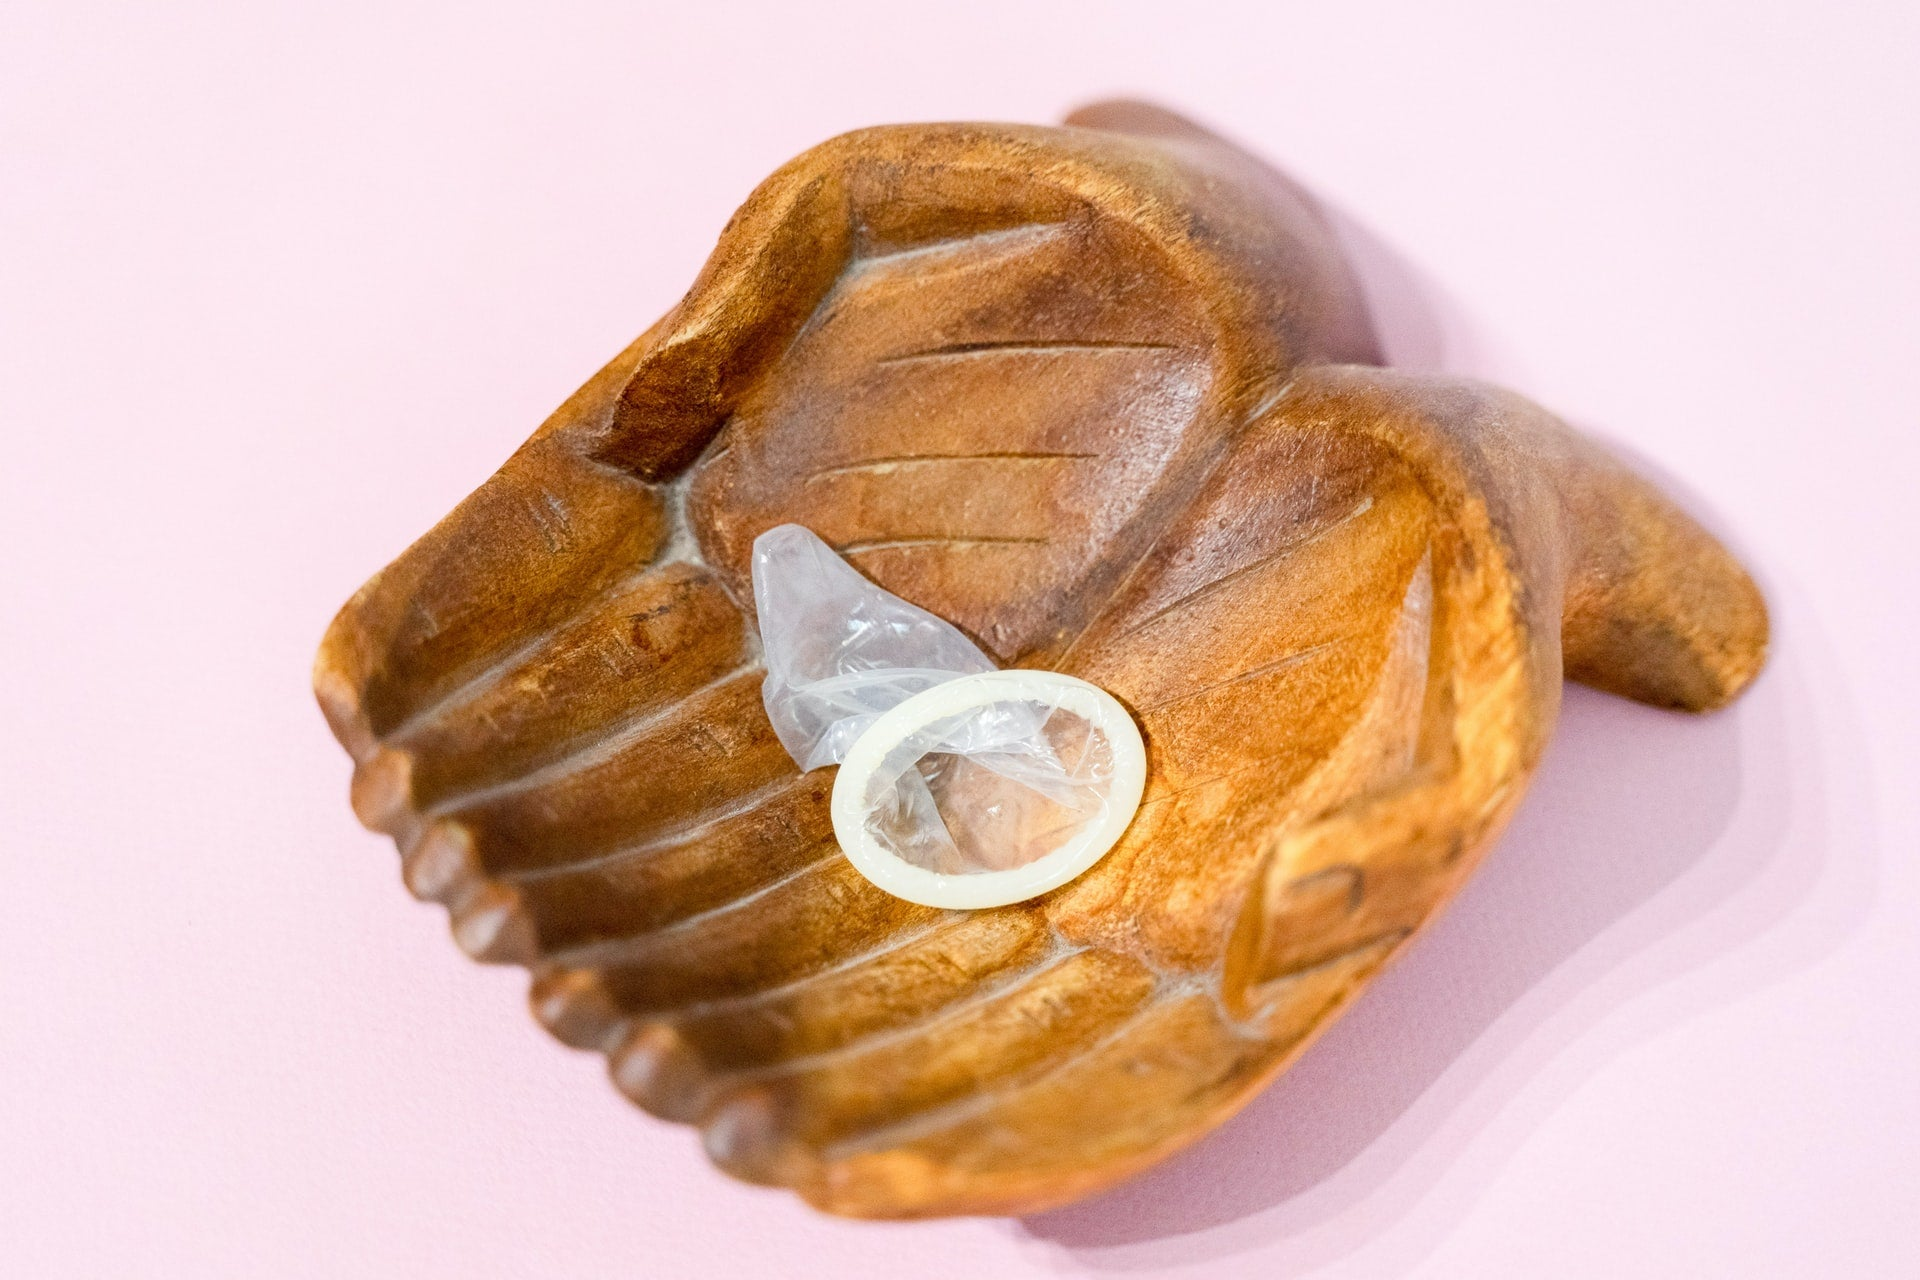 condom in a wooden hand